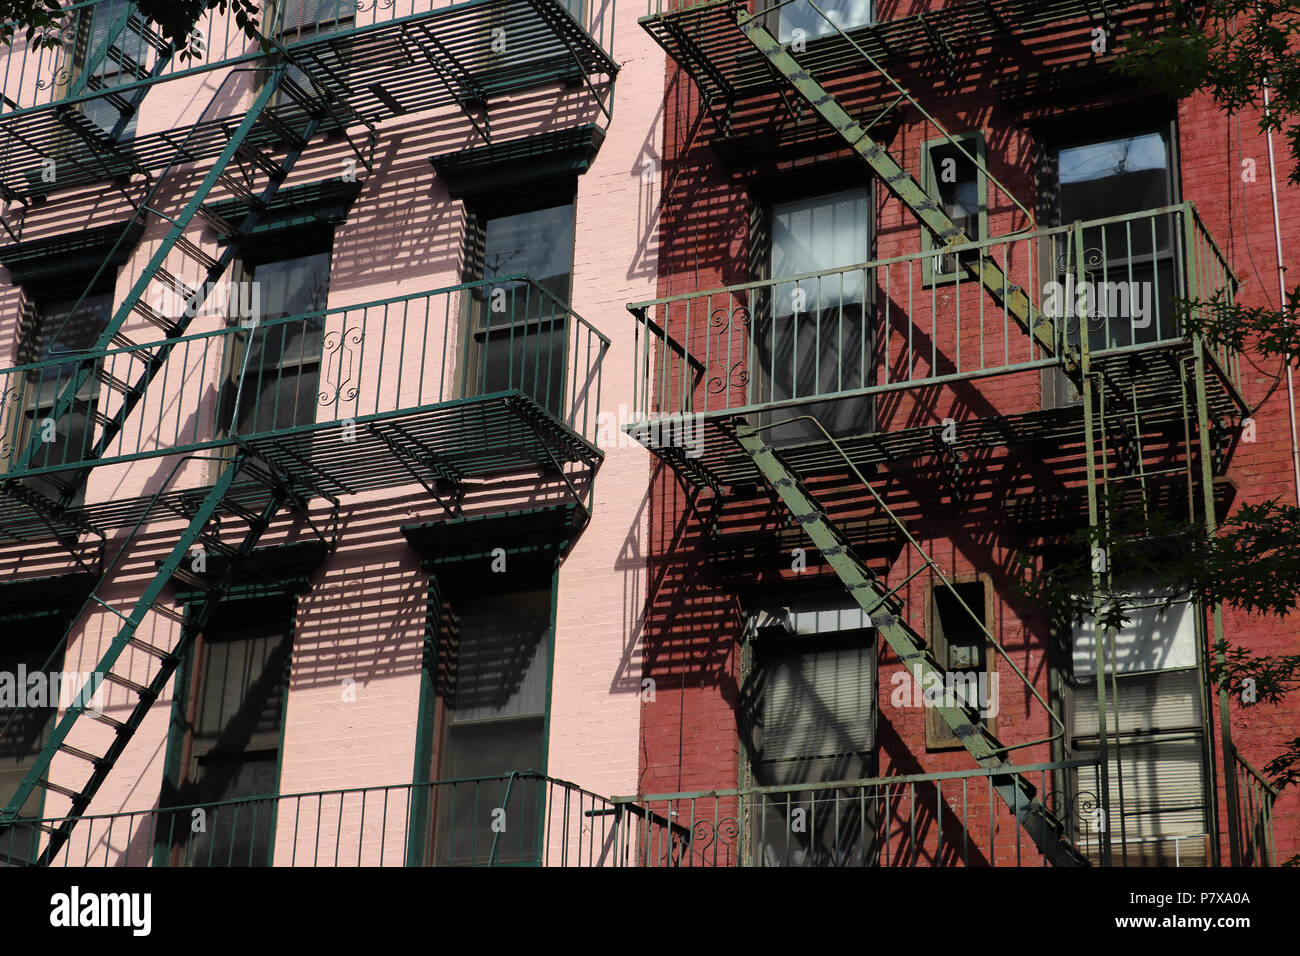 Close up of two old brick buildings in lower Manhattan painted pink and red, with green fire escapes that cast interesting shadows on their facades - Stock Image